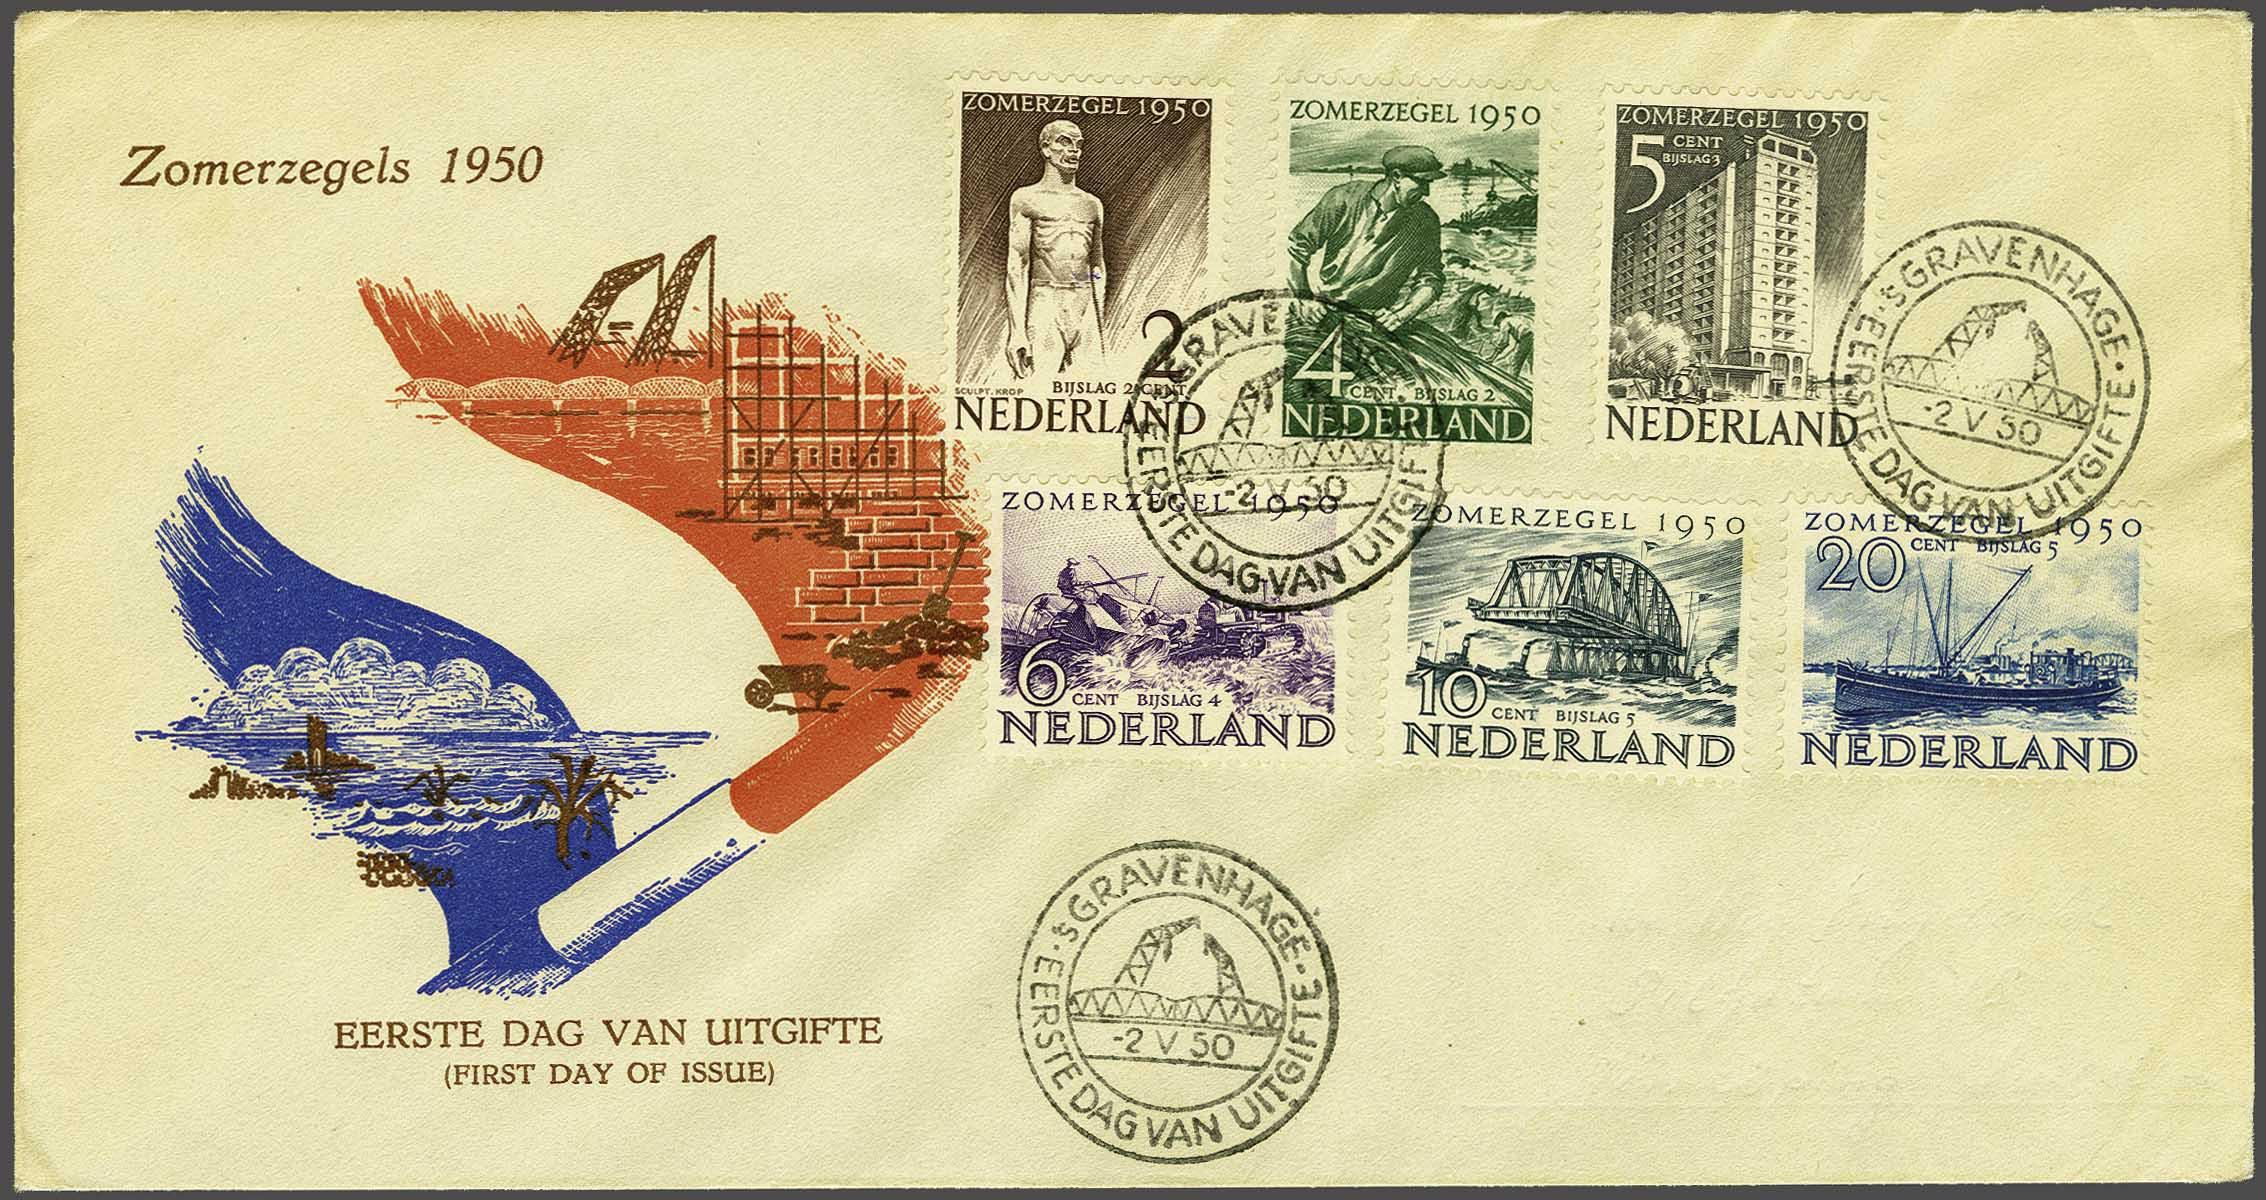 Lot 1908 - Netherlands and former colonies Netherlands -  Corinphila Veilingen Auction 245-246 Day 3 - Netherlands and former colonies - Single lots, Collections and lots, Boxes and literature